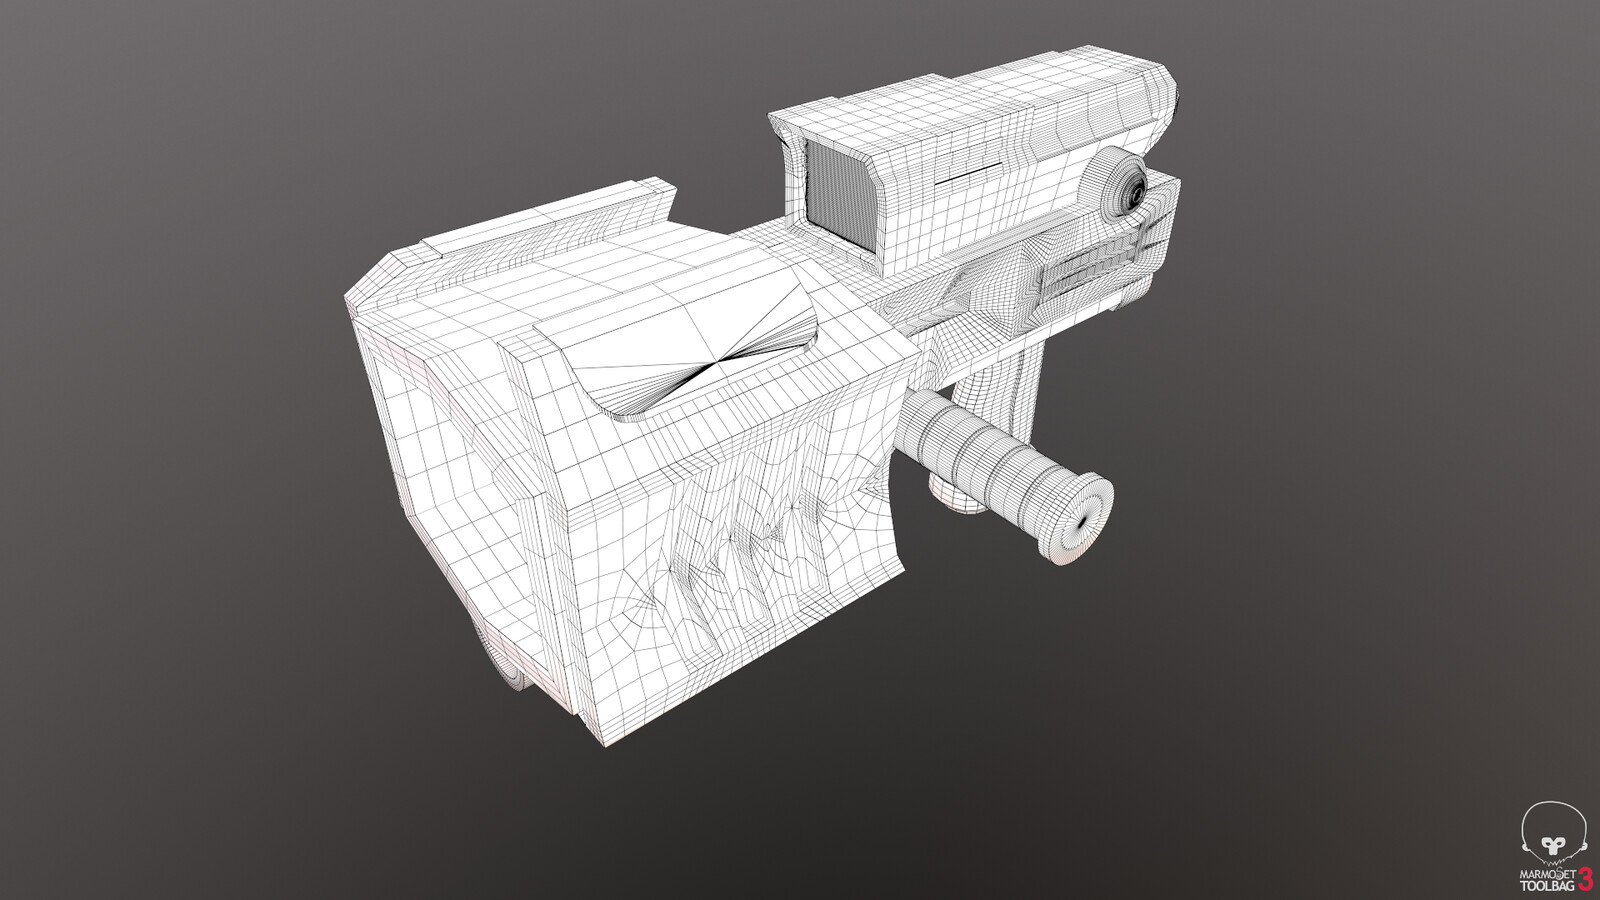 Wireframes. Never went back to fix topology so its a bit of a mess